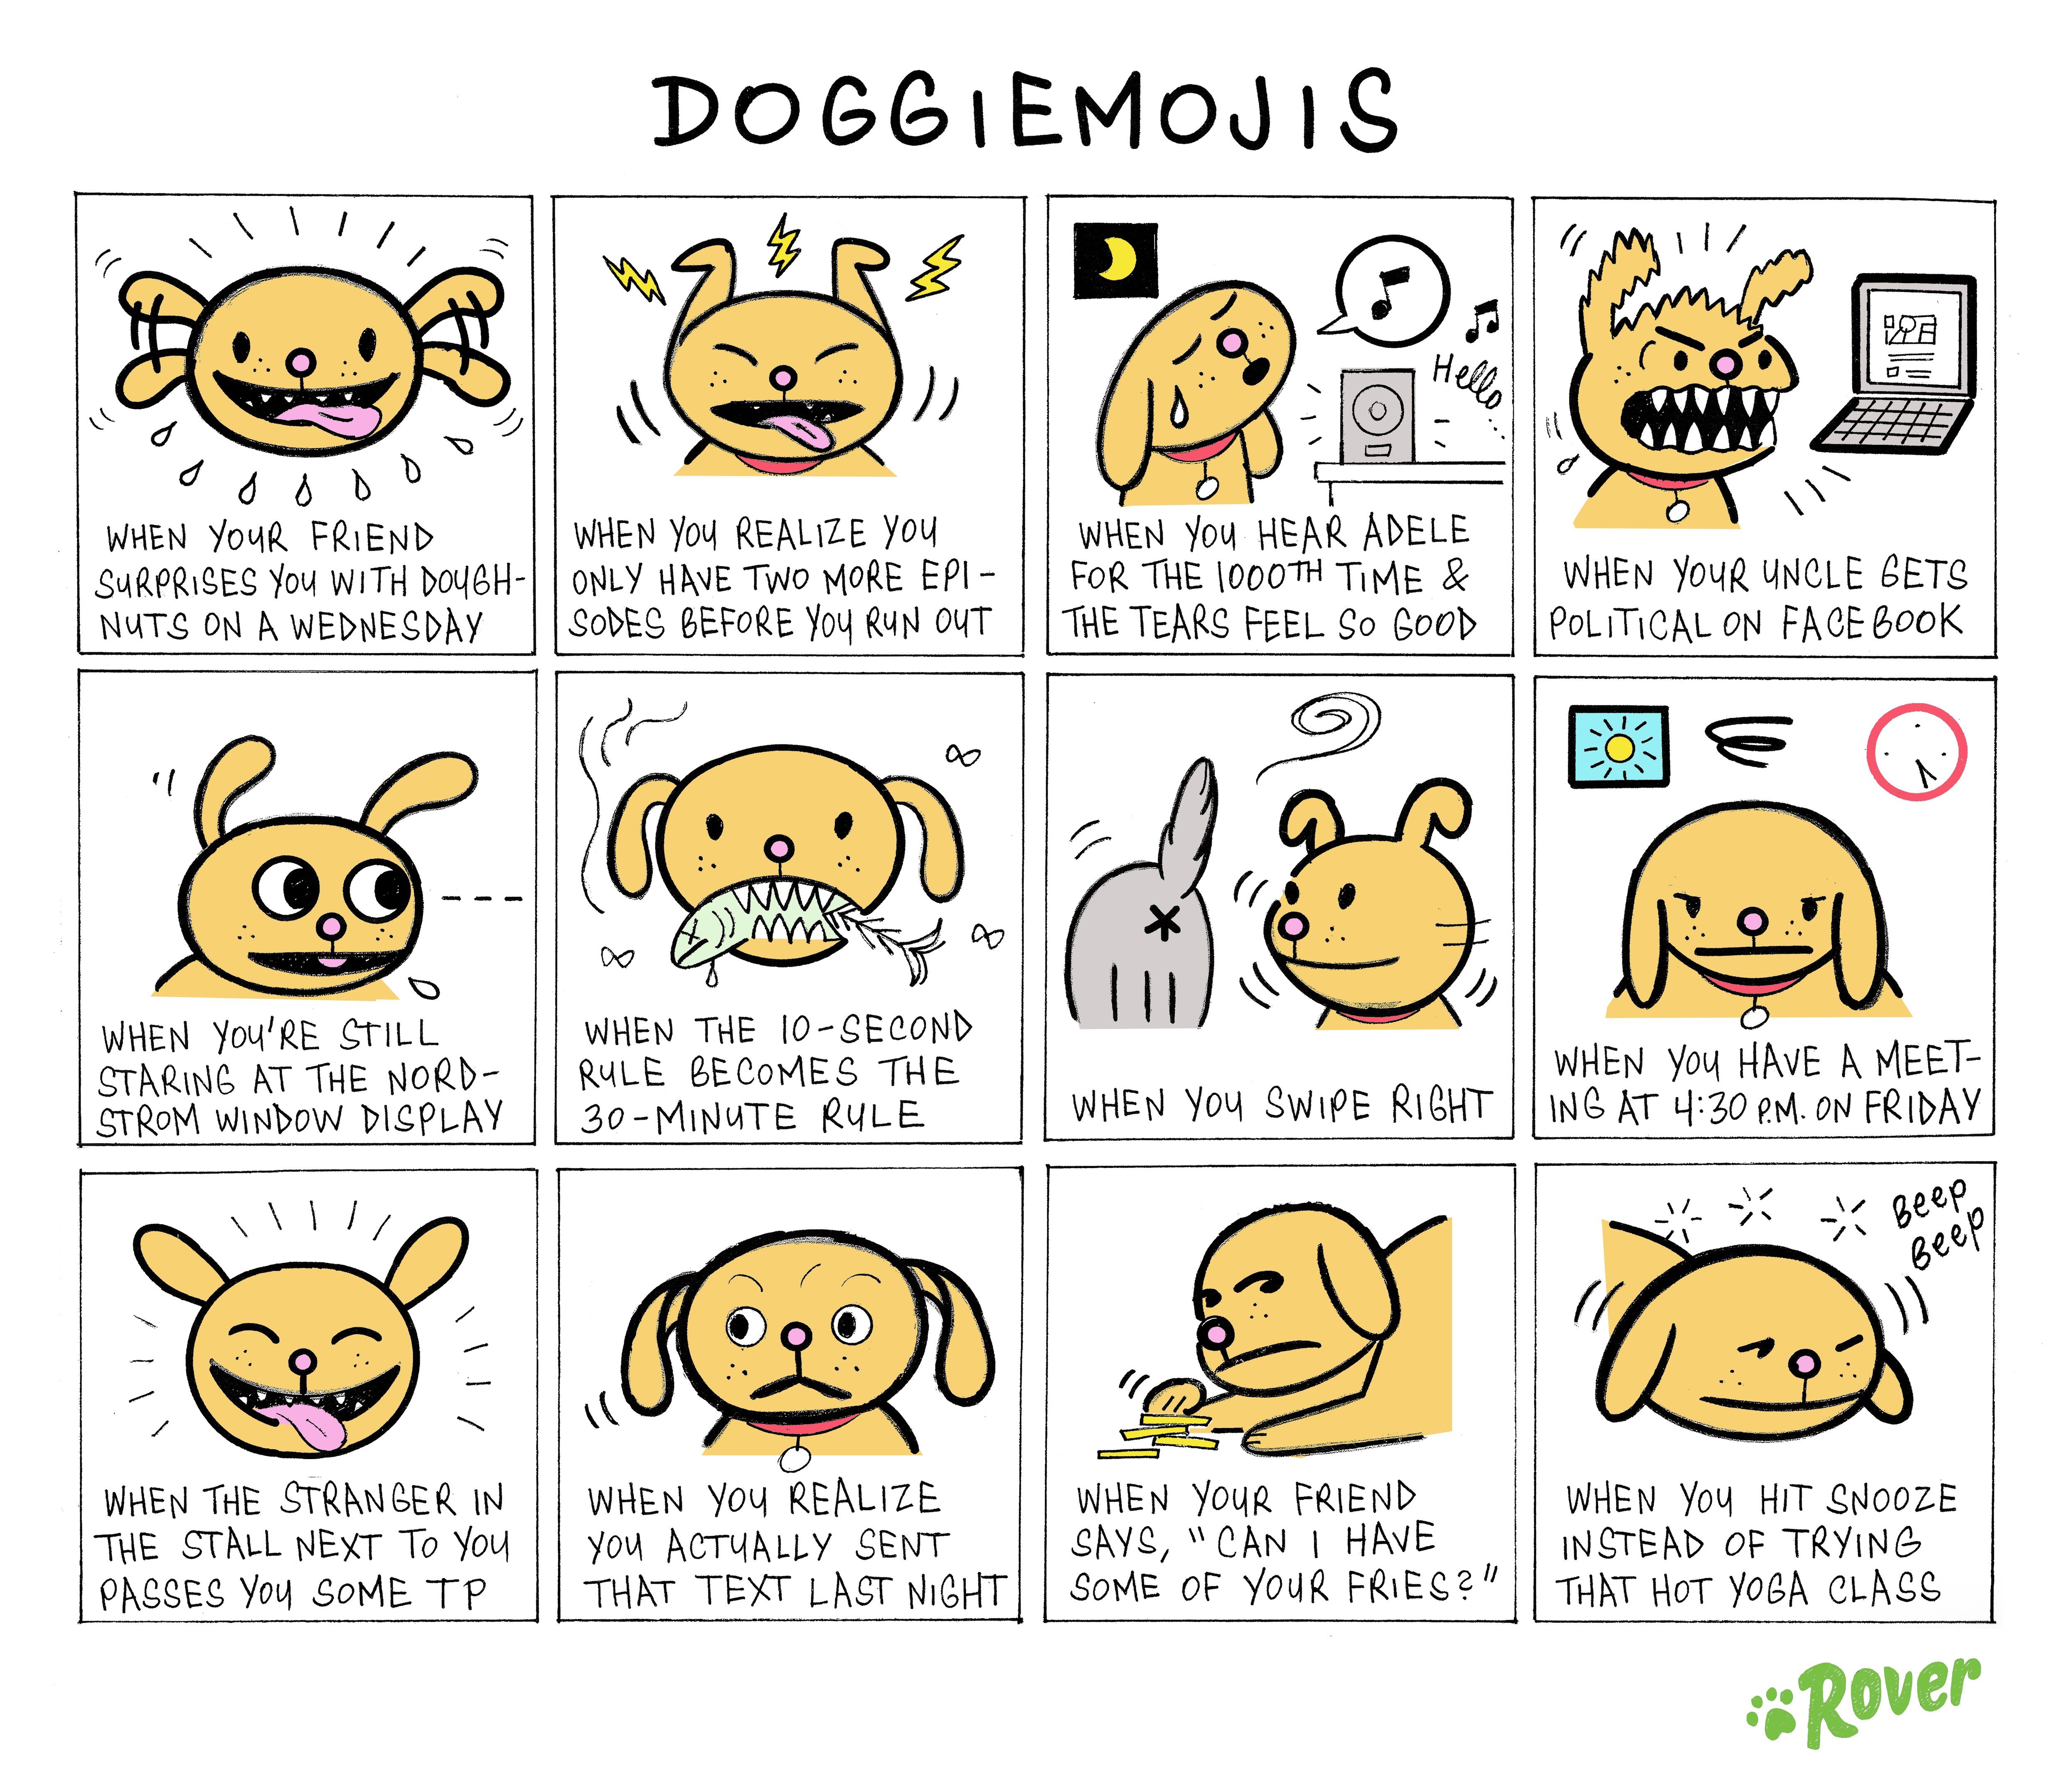 emojis featuring dogs